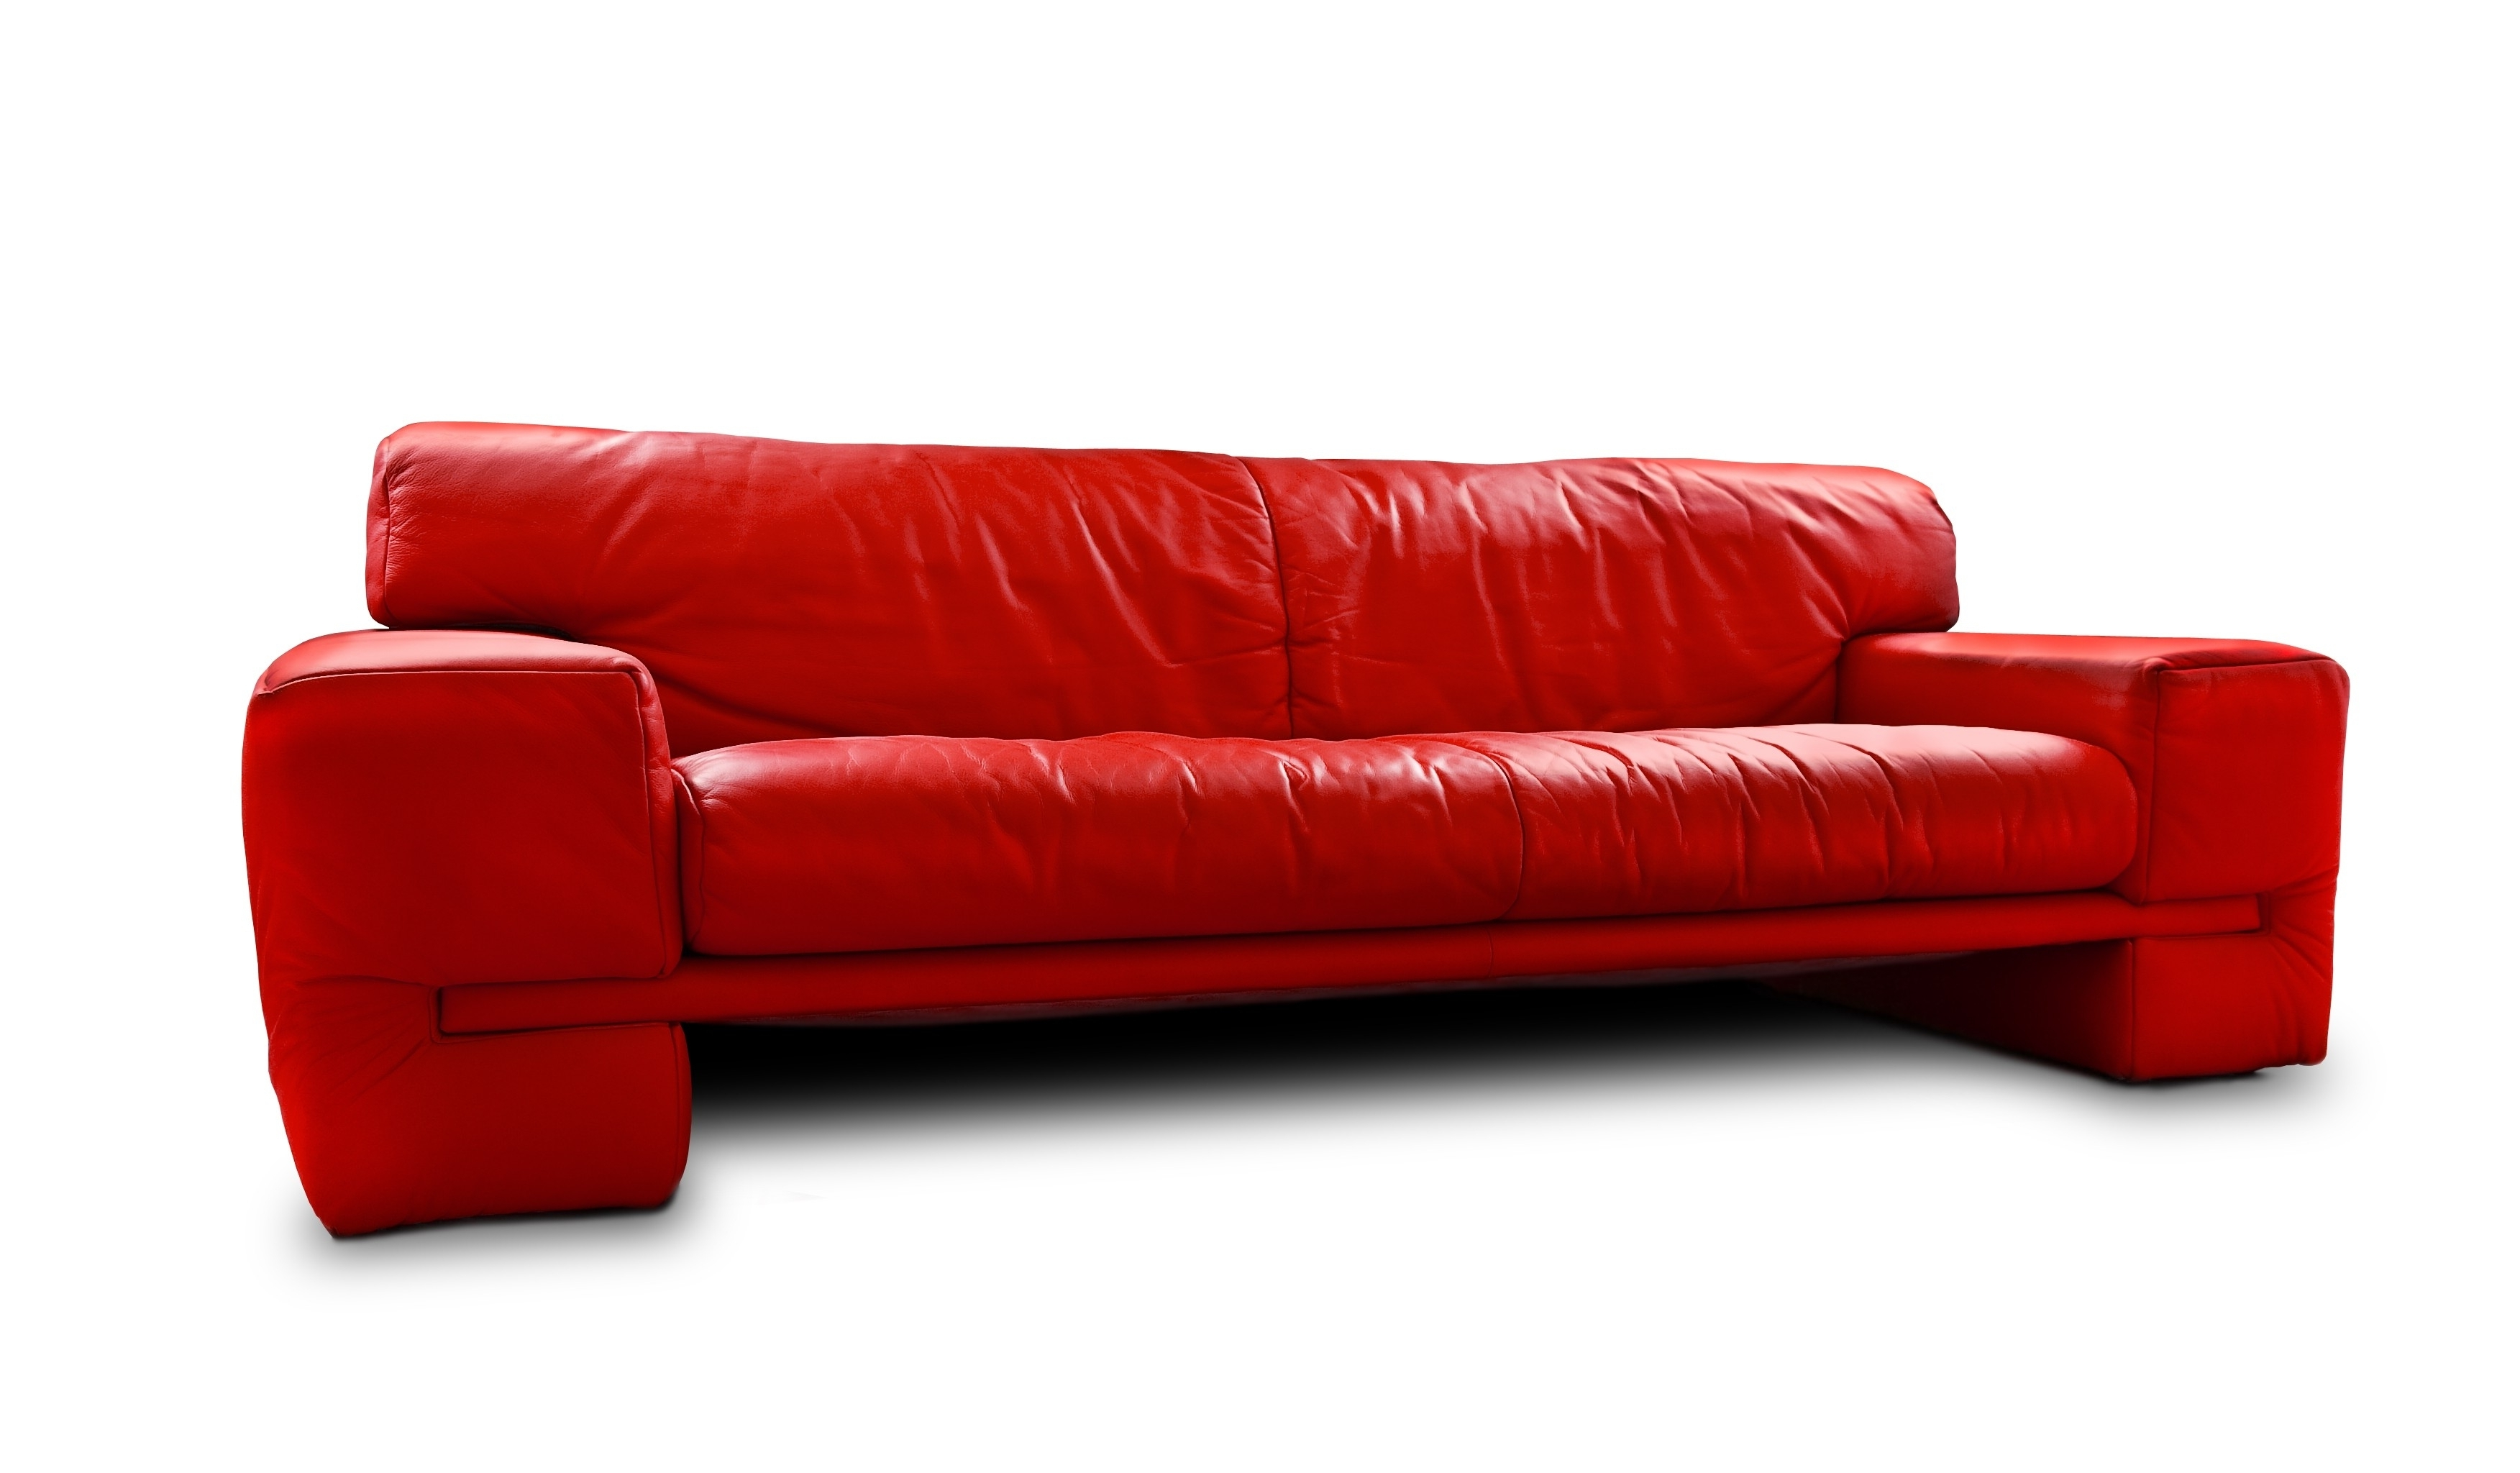 Captivating Red Leather Sleeper Sofa Cool Home Furniture Ideas In Current Red Sleeper Sofas (View 4 of 20)